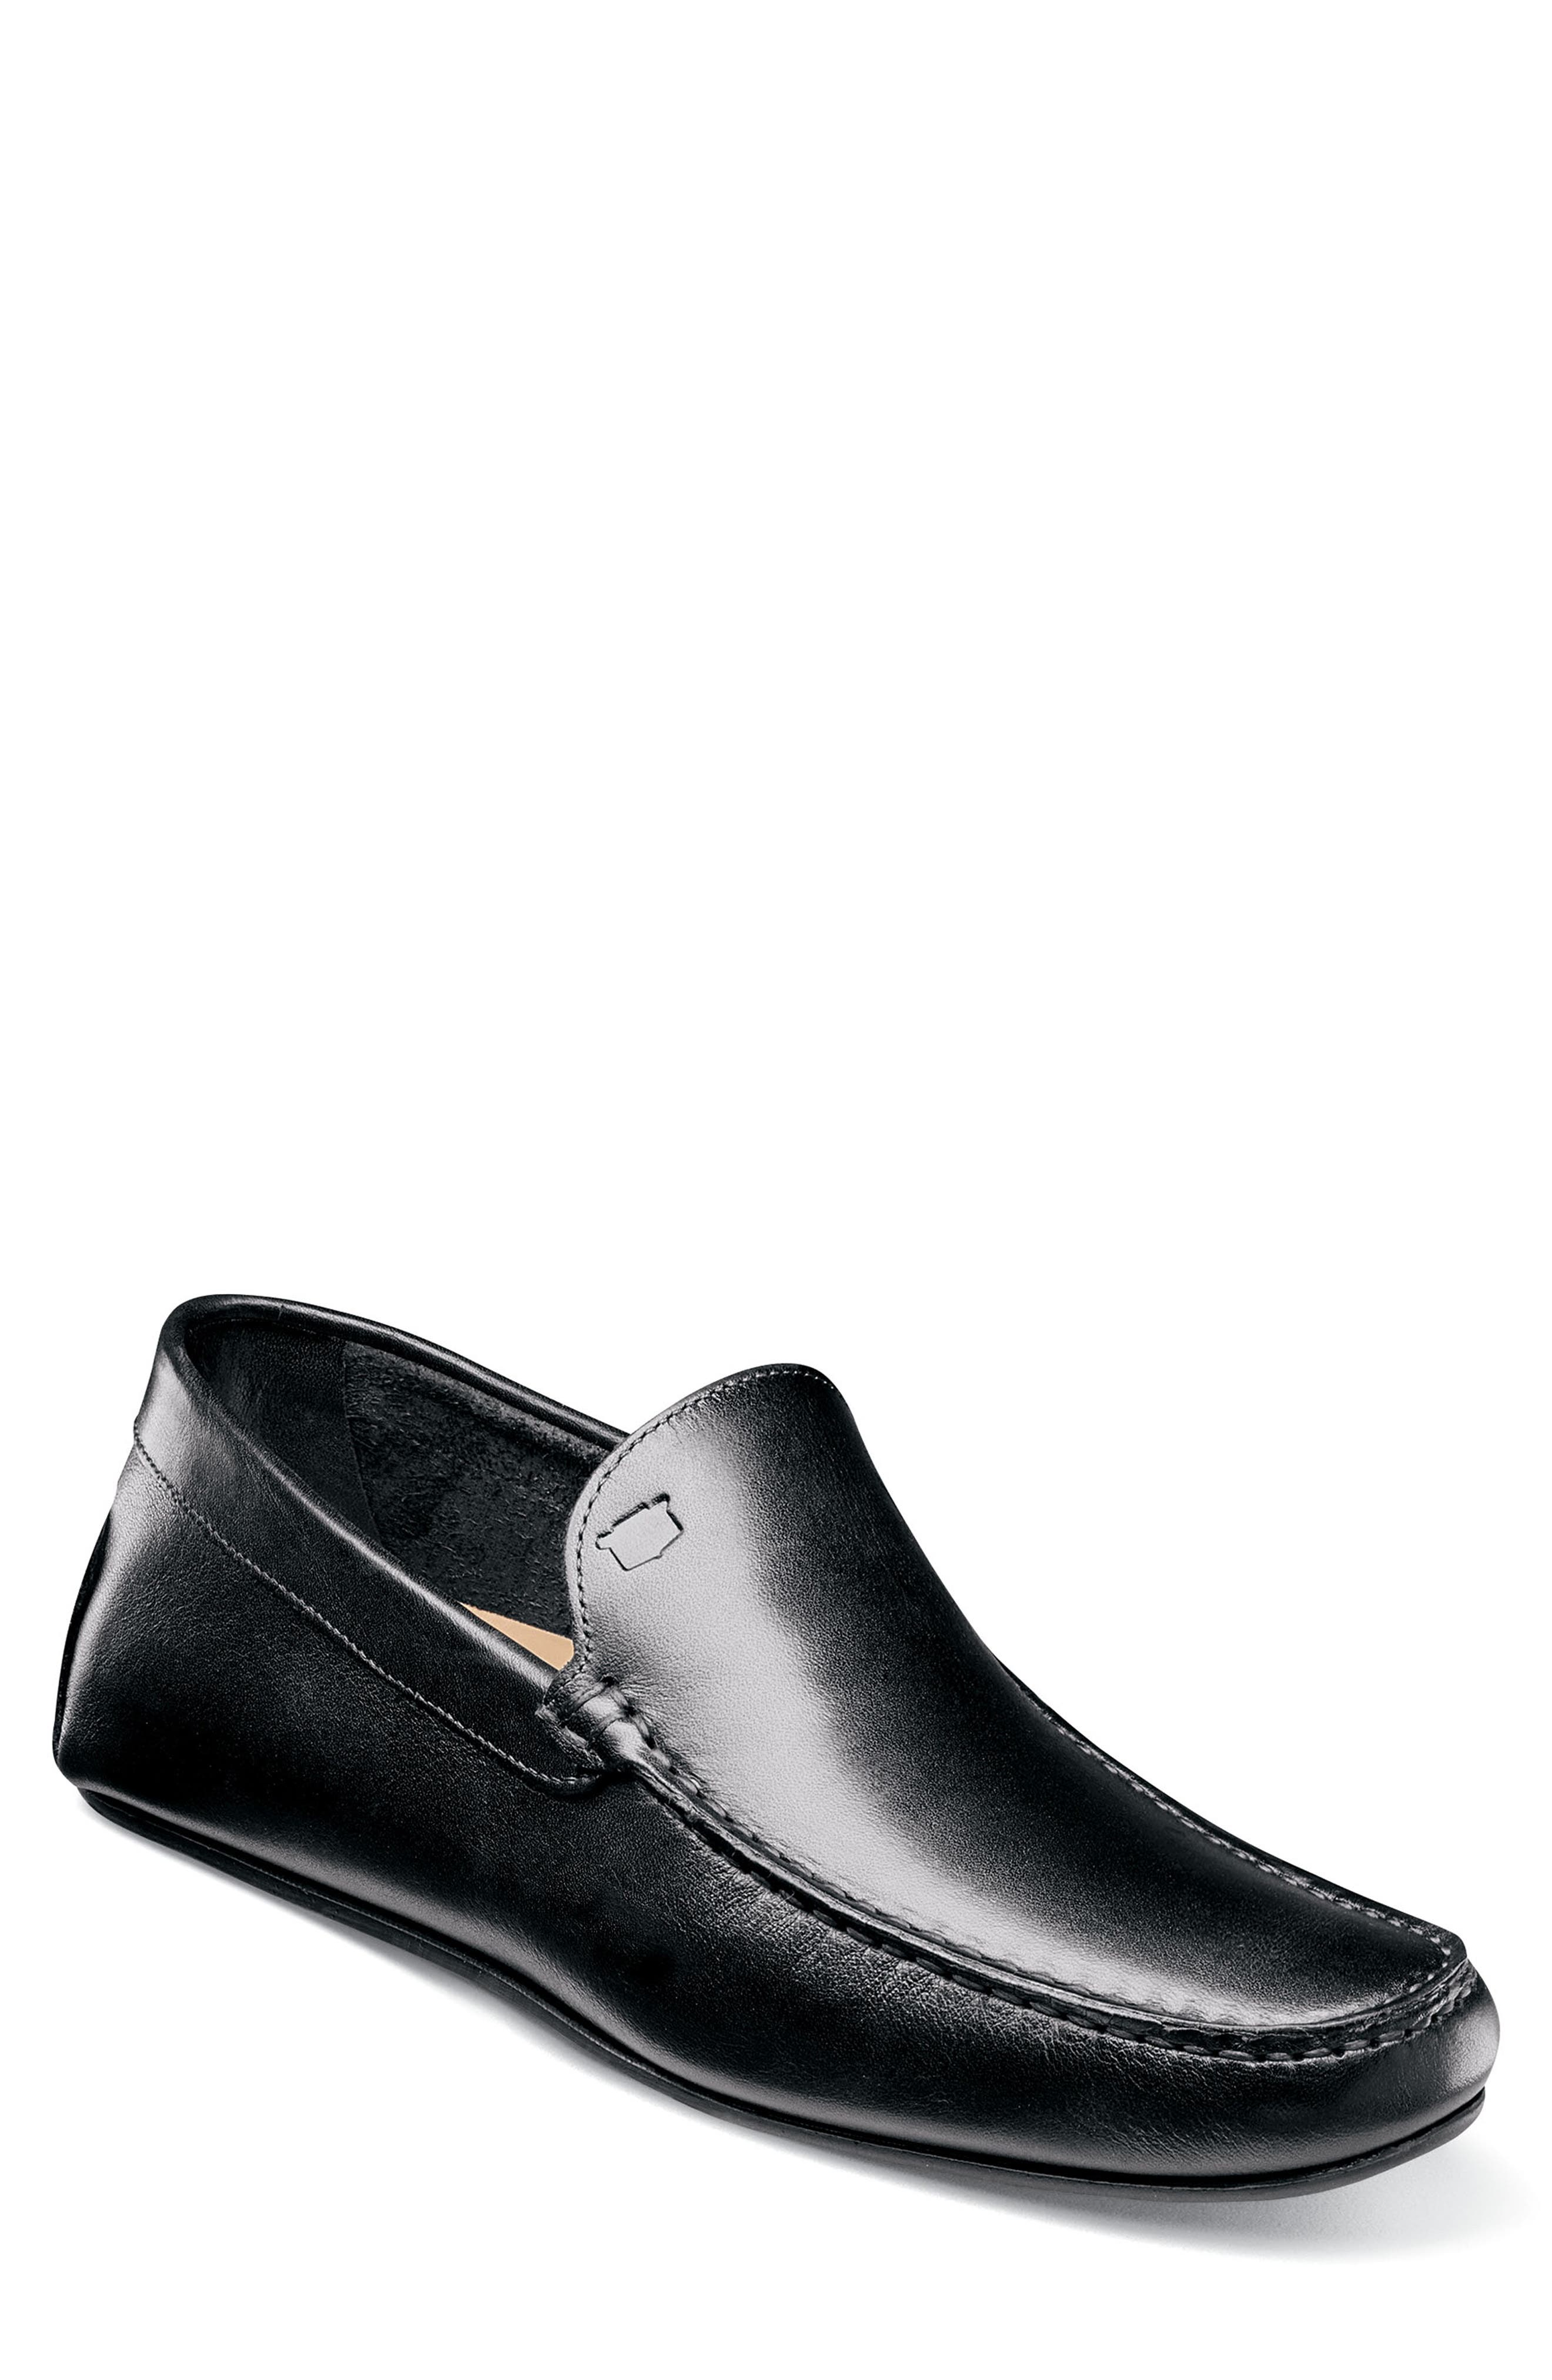 Navono Driving Moccasin,                         Main,                         color, BLACK LEATHER